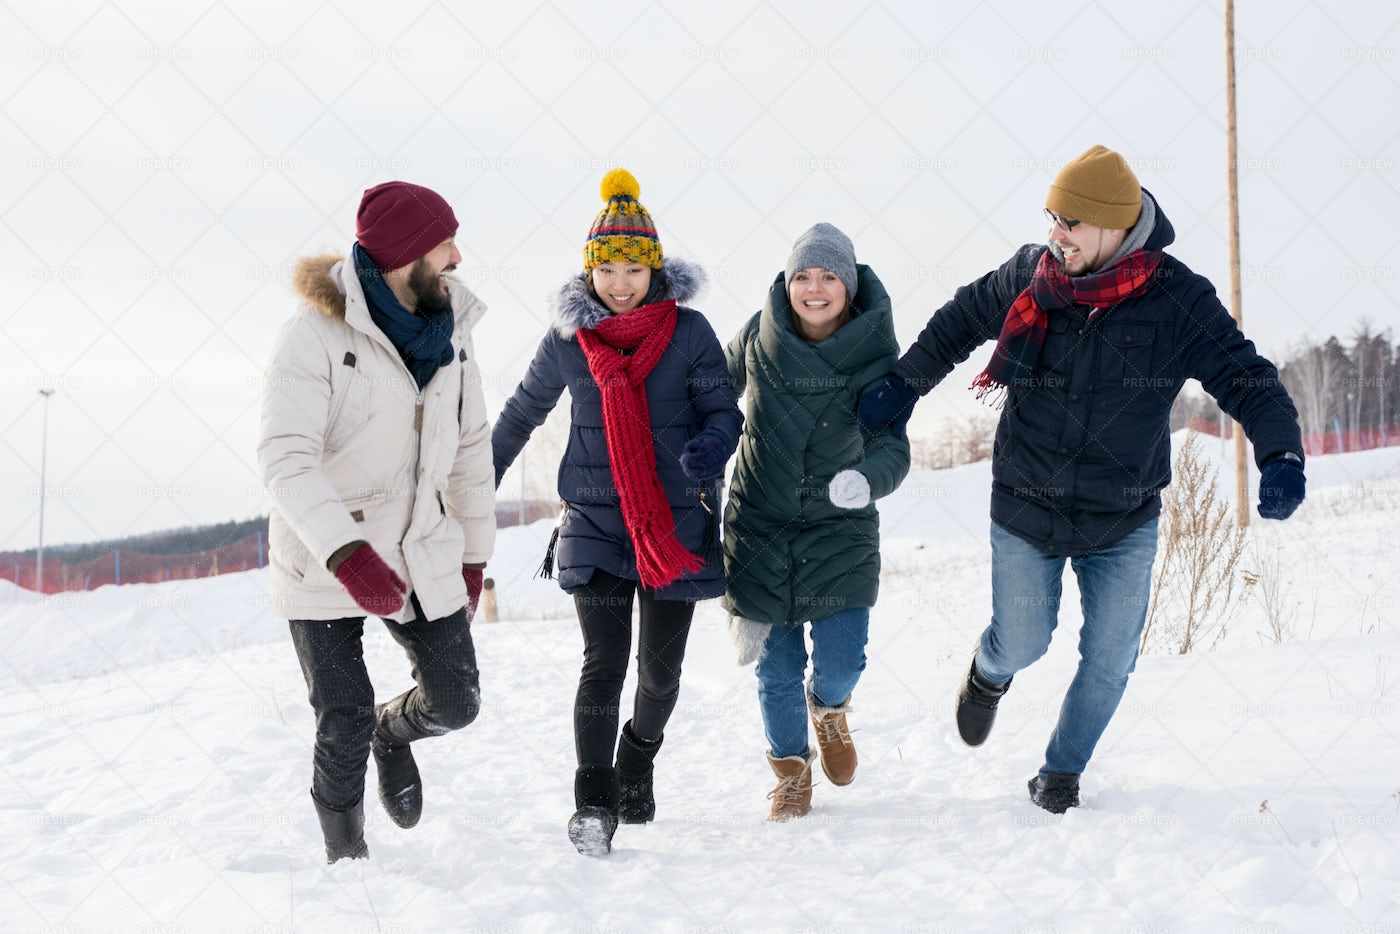 Young People Having Fun In Winter: Stock Photos